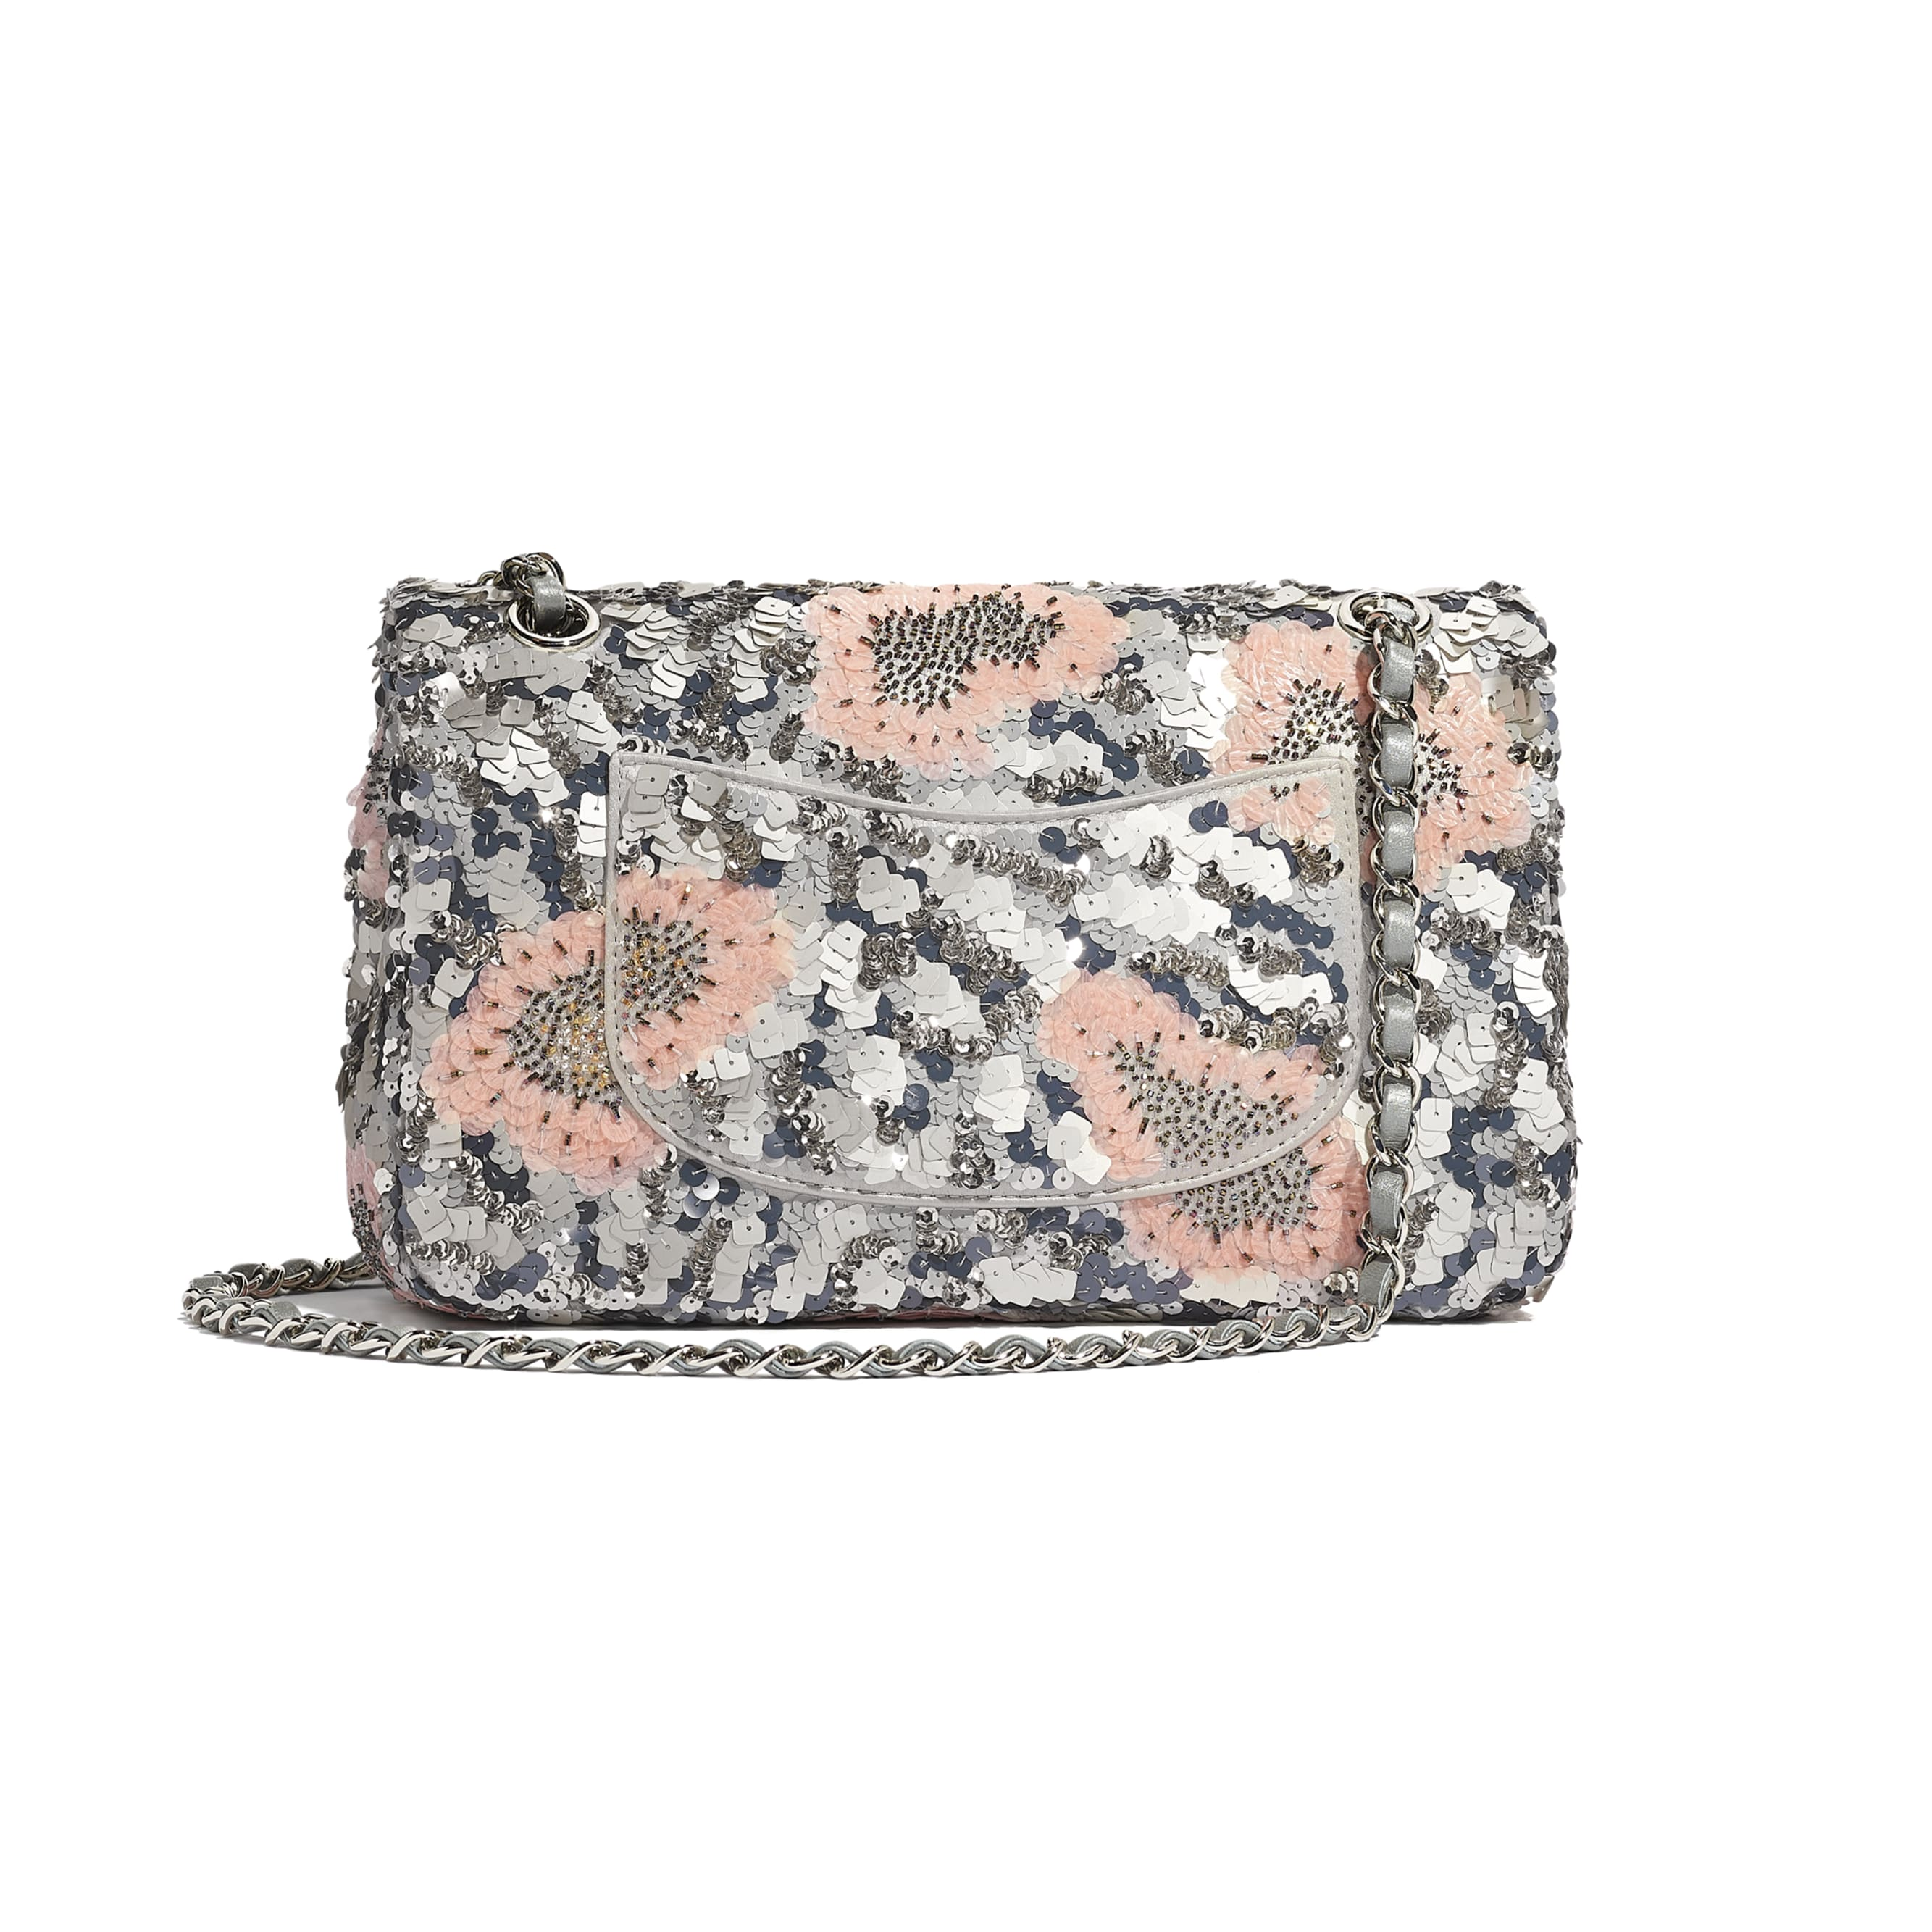 Classic Handbag - Gray, Silver & Pink - Sequins, Glass Pearls & Silver-Tone Metal - CHANEL - Alternative view - see standard sized version